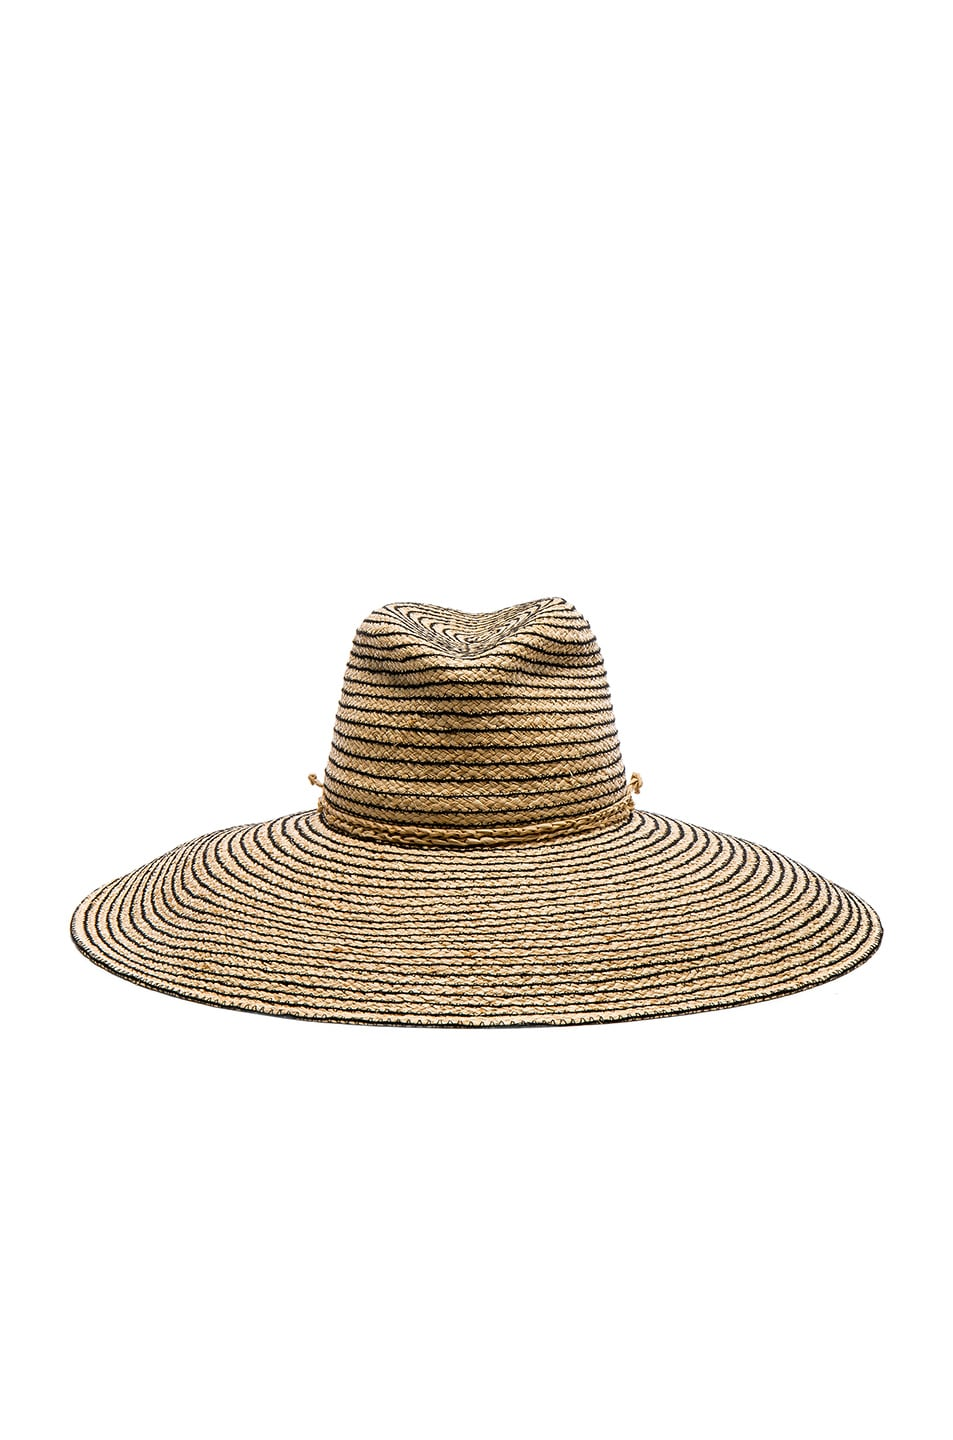 Image 1 of Lola Hats Jolly Rancher Hat in Natural & Black Stripe